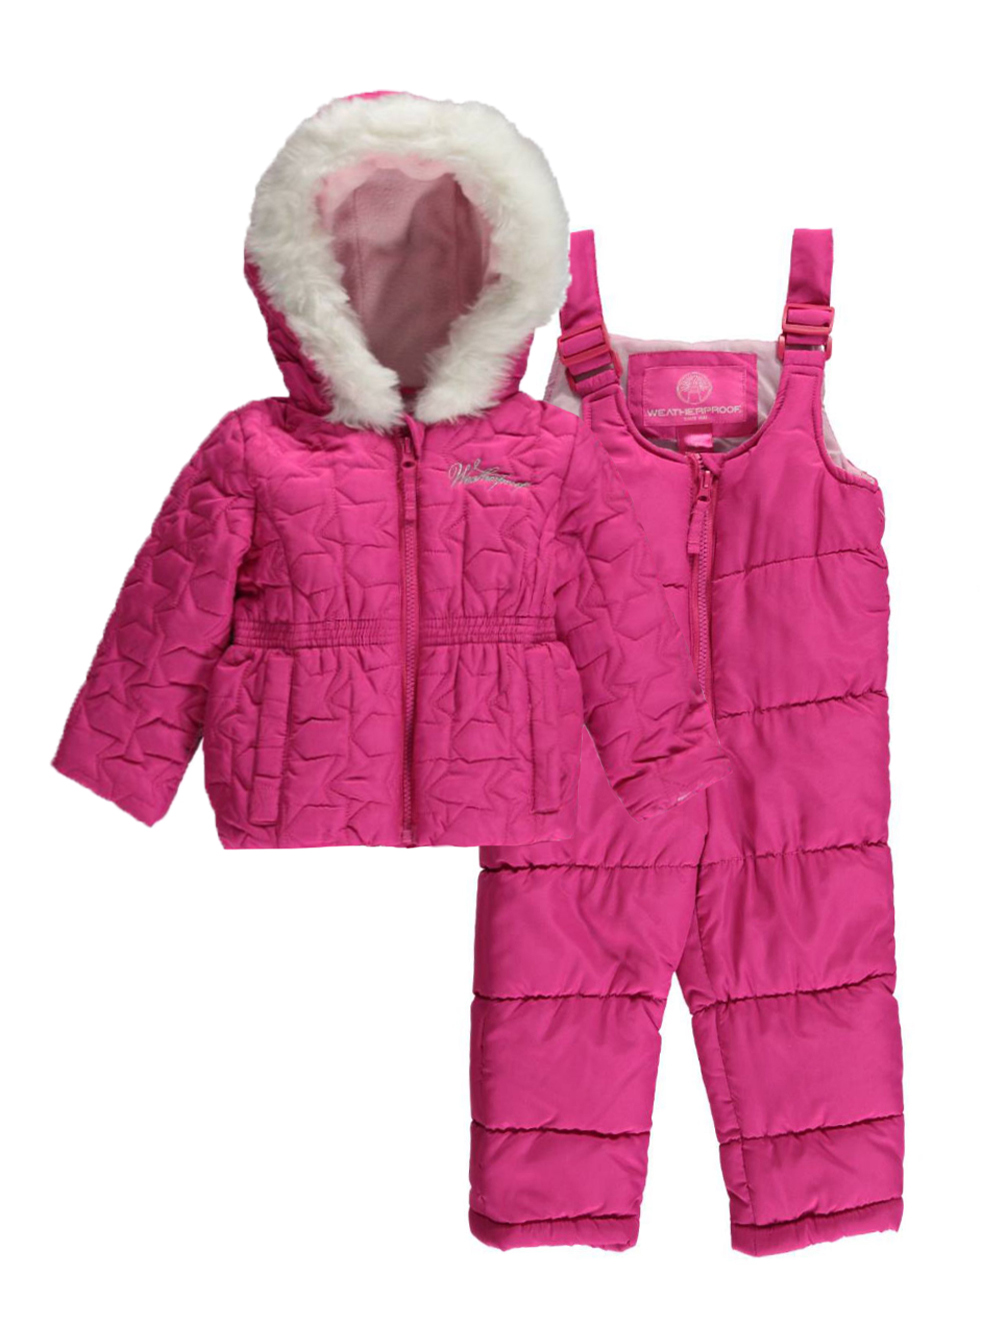 Baby Girls' Coats and Pramsuits. On colder days, your little one will need a cosy cover up. Our baby girls coats come in a range of styles. Whether she's in a jazzy rain coat, a chic blazer, or a smart quilted jacket, she'll stand out from the crowd.